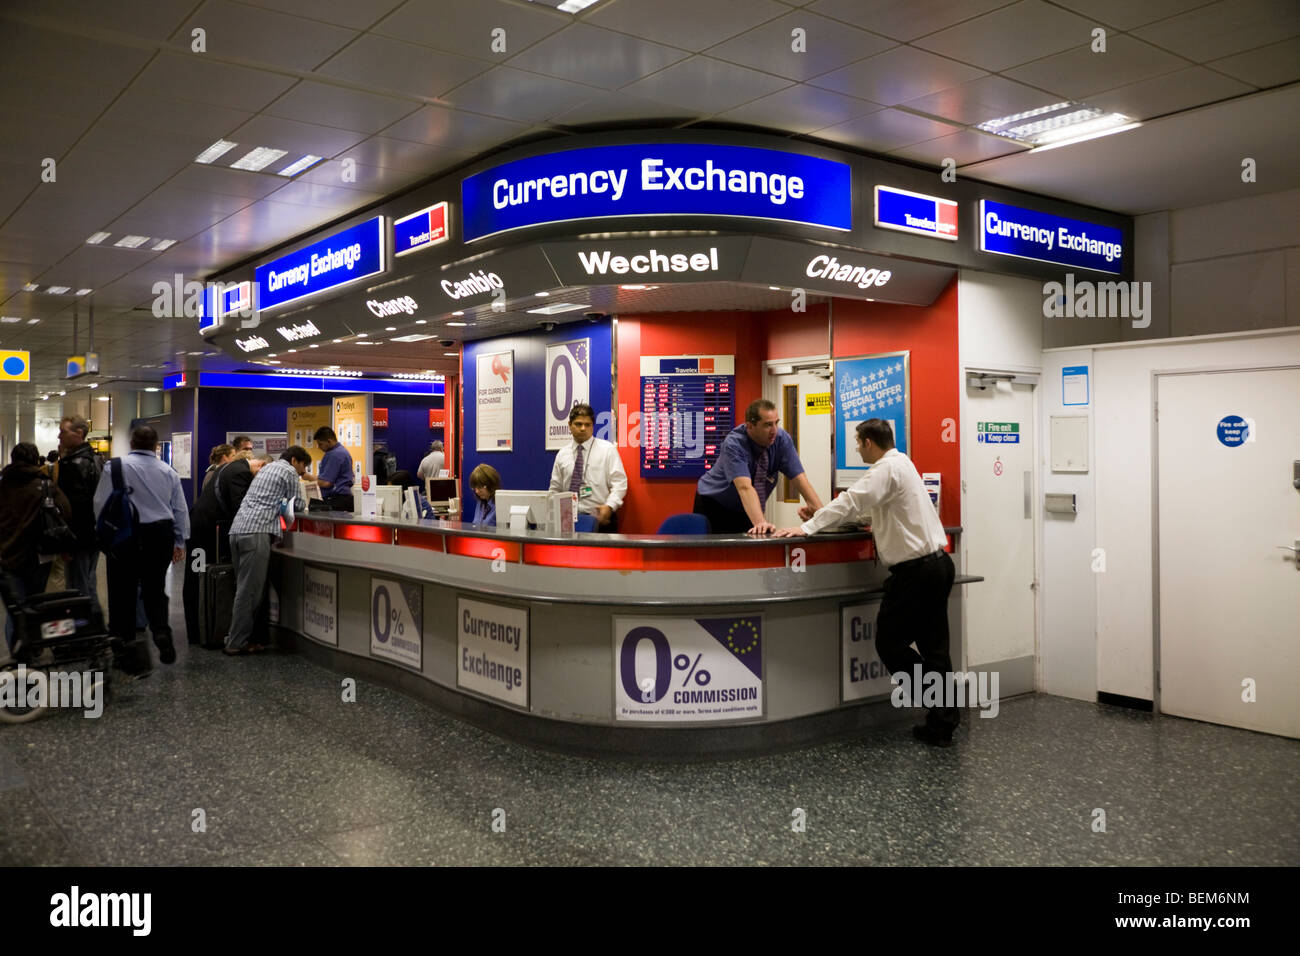 The Shop Bureau De Change Currency Exchange Bureau At Gatwick Airport Stock Photo Royalty